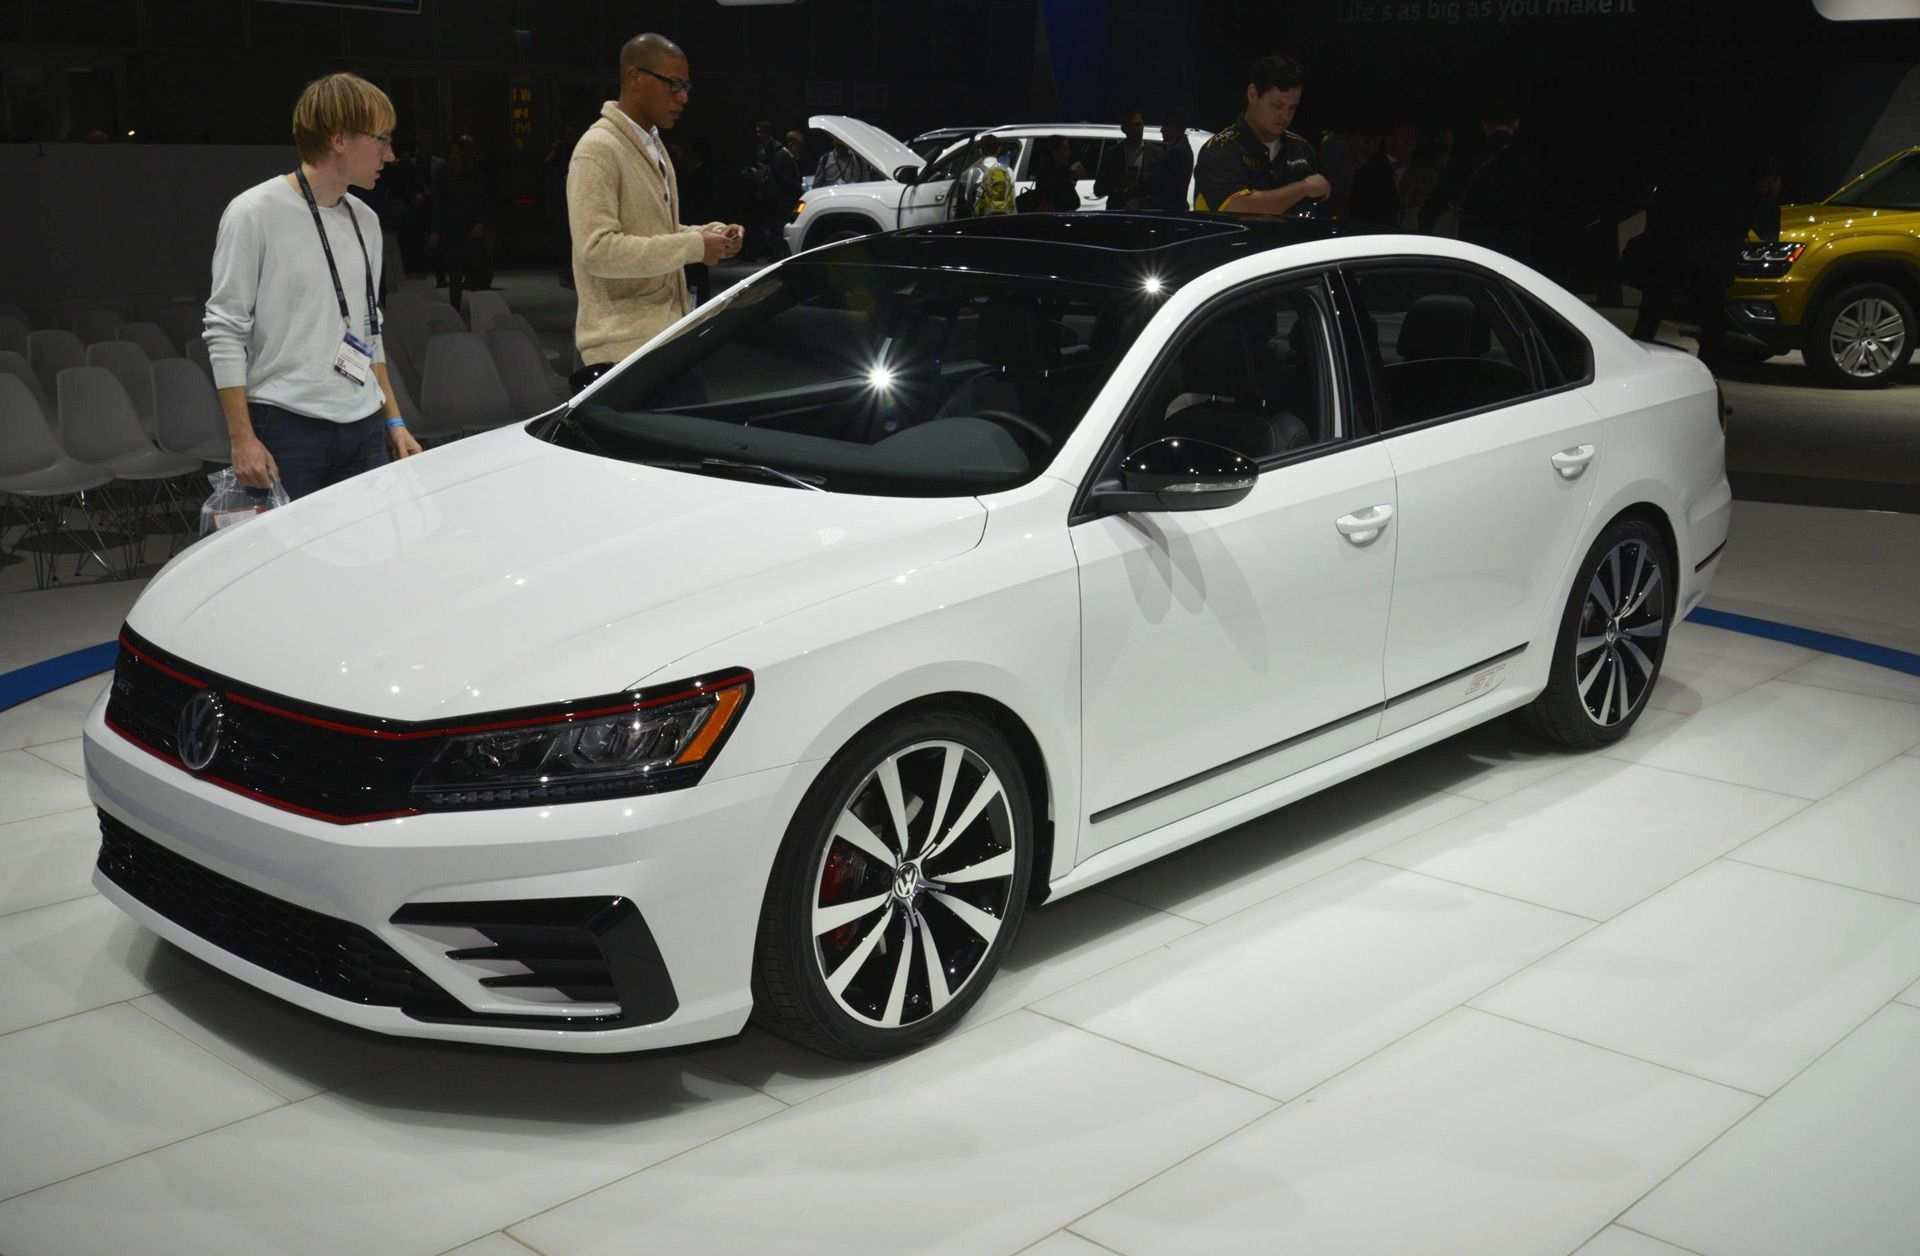 84 Best Review Vw Passat Gt 2019 Overview for Vw Passat Gt 2019